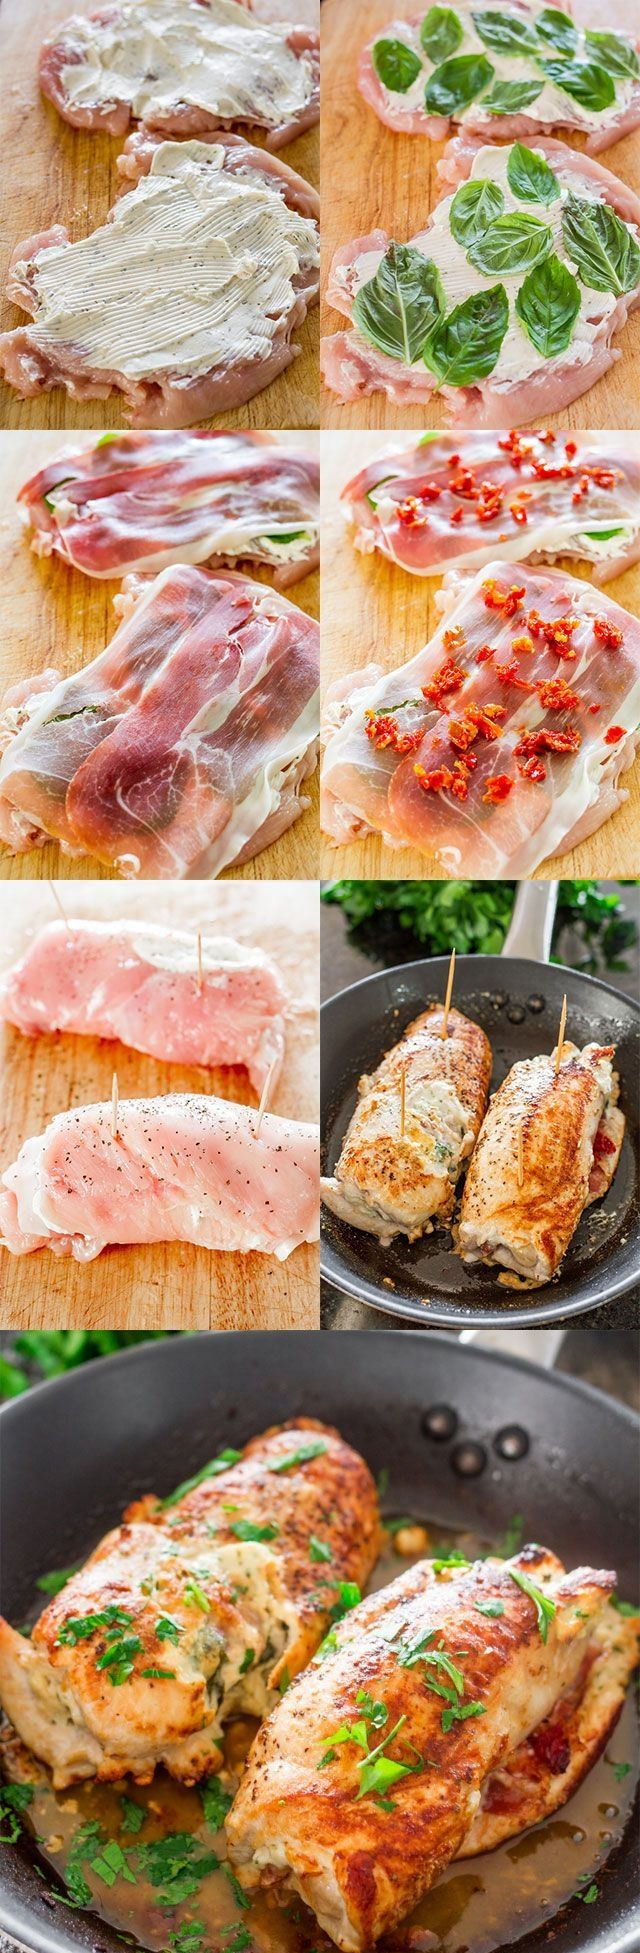 ingredients 2 boneless chicken breast halves ¼ cup spreadable garlic and herb cream cheese 4 thin slices prosciutto 2 tbsp chopped oil packed sun-dried tomatoes 6-12 basil leaves, depending on size 2 tbsp olive oil salt and pepper to taste